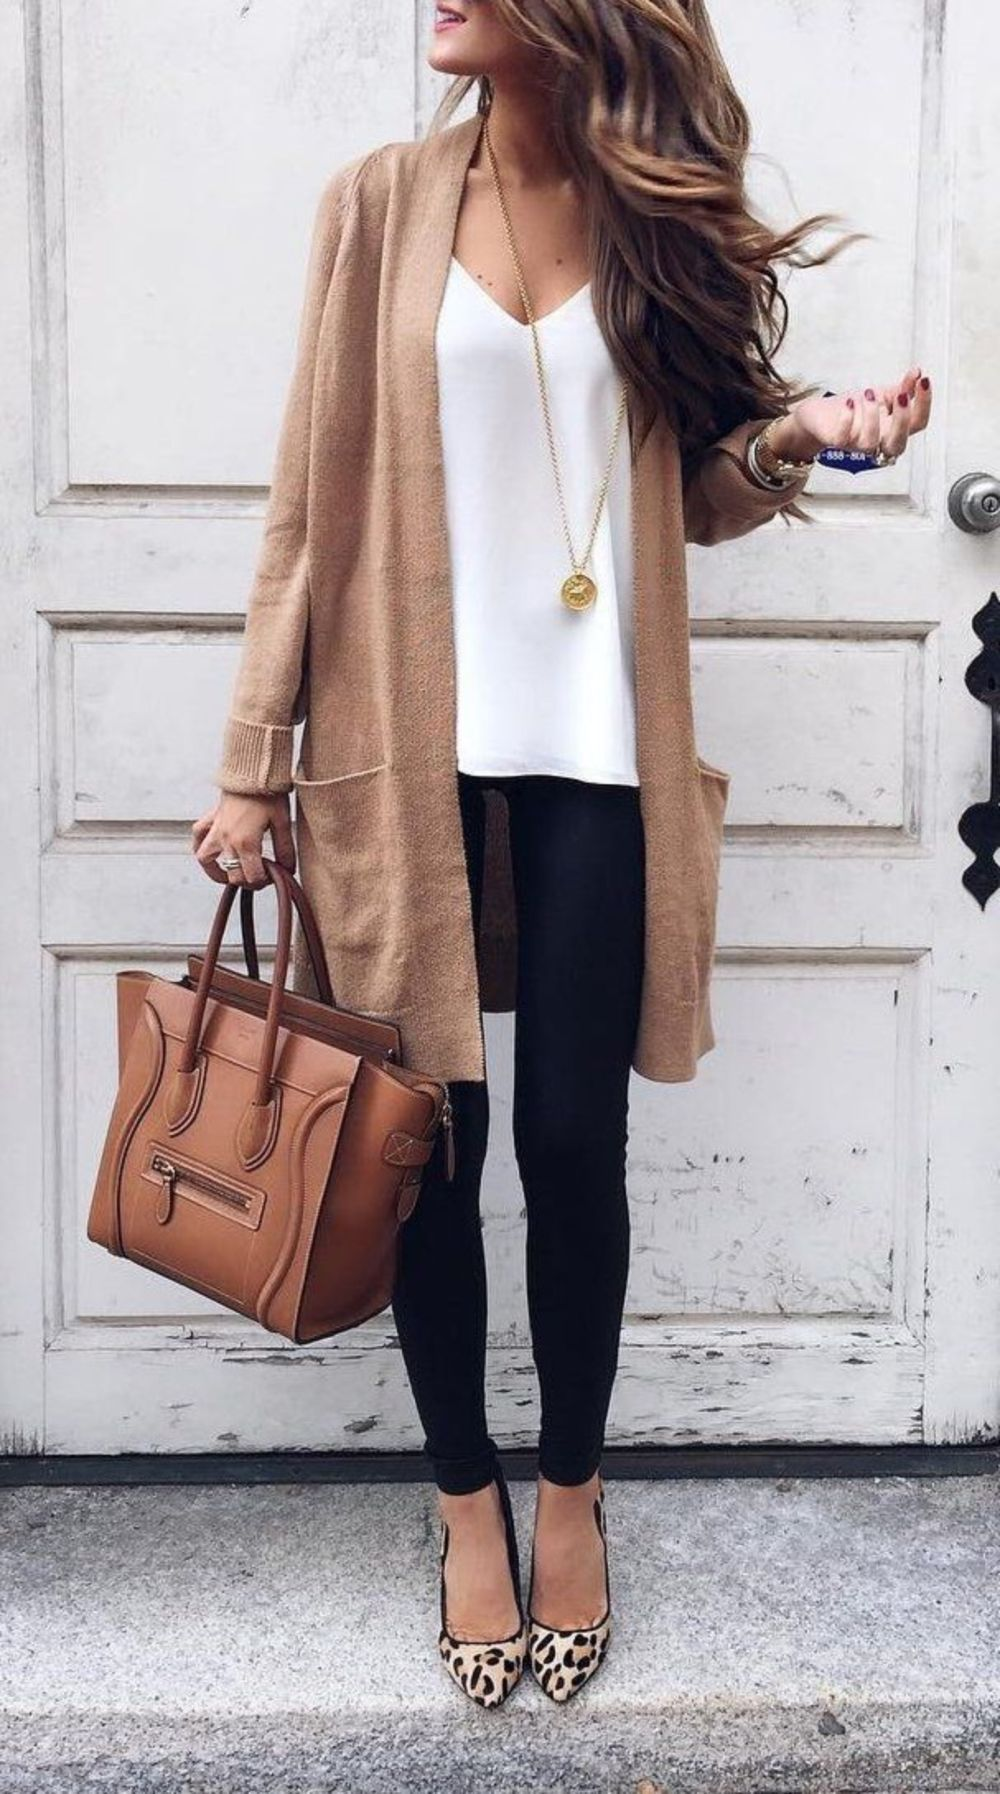 Outfits 2017 Women Sweater In 2019 Like Fall Outfits Fashion Cardigan